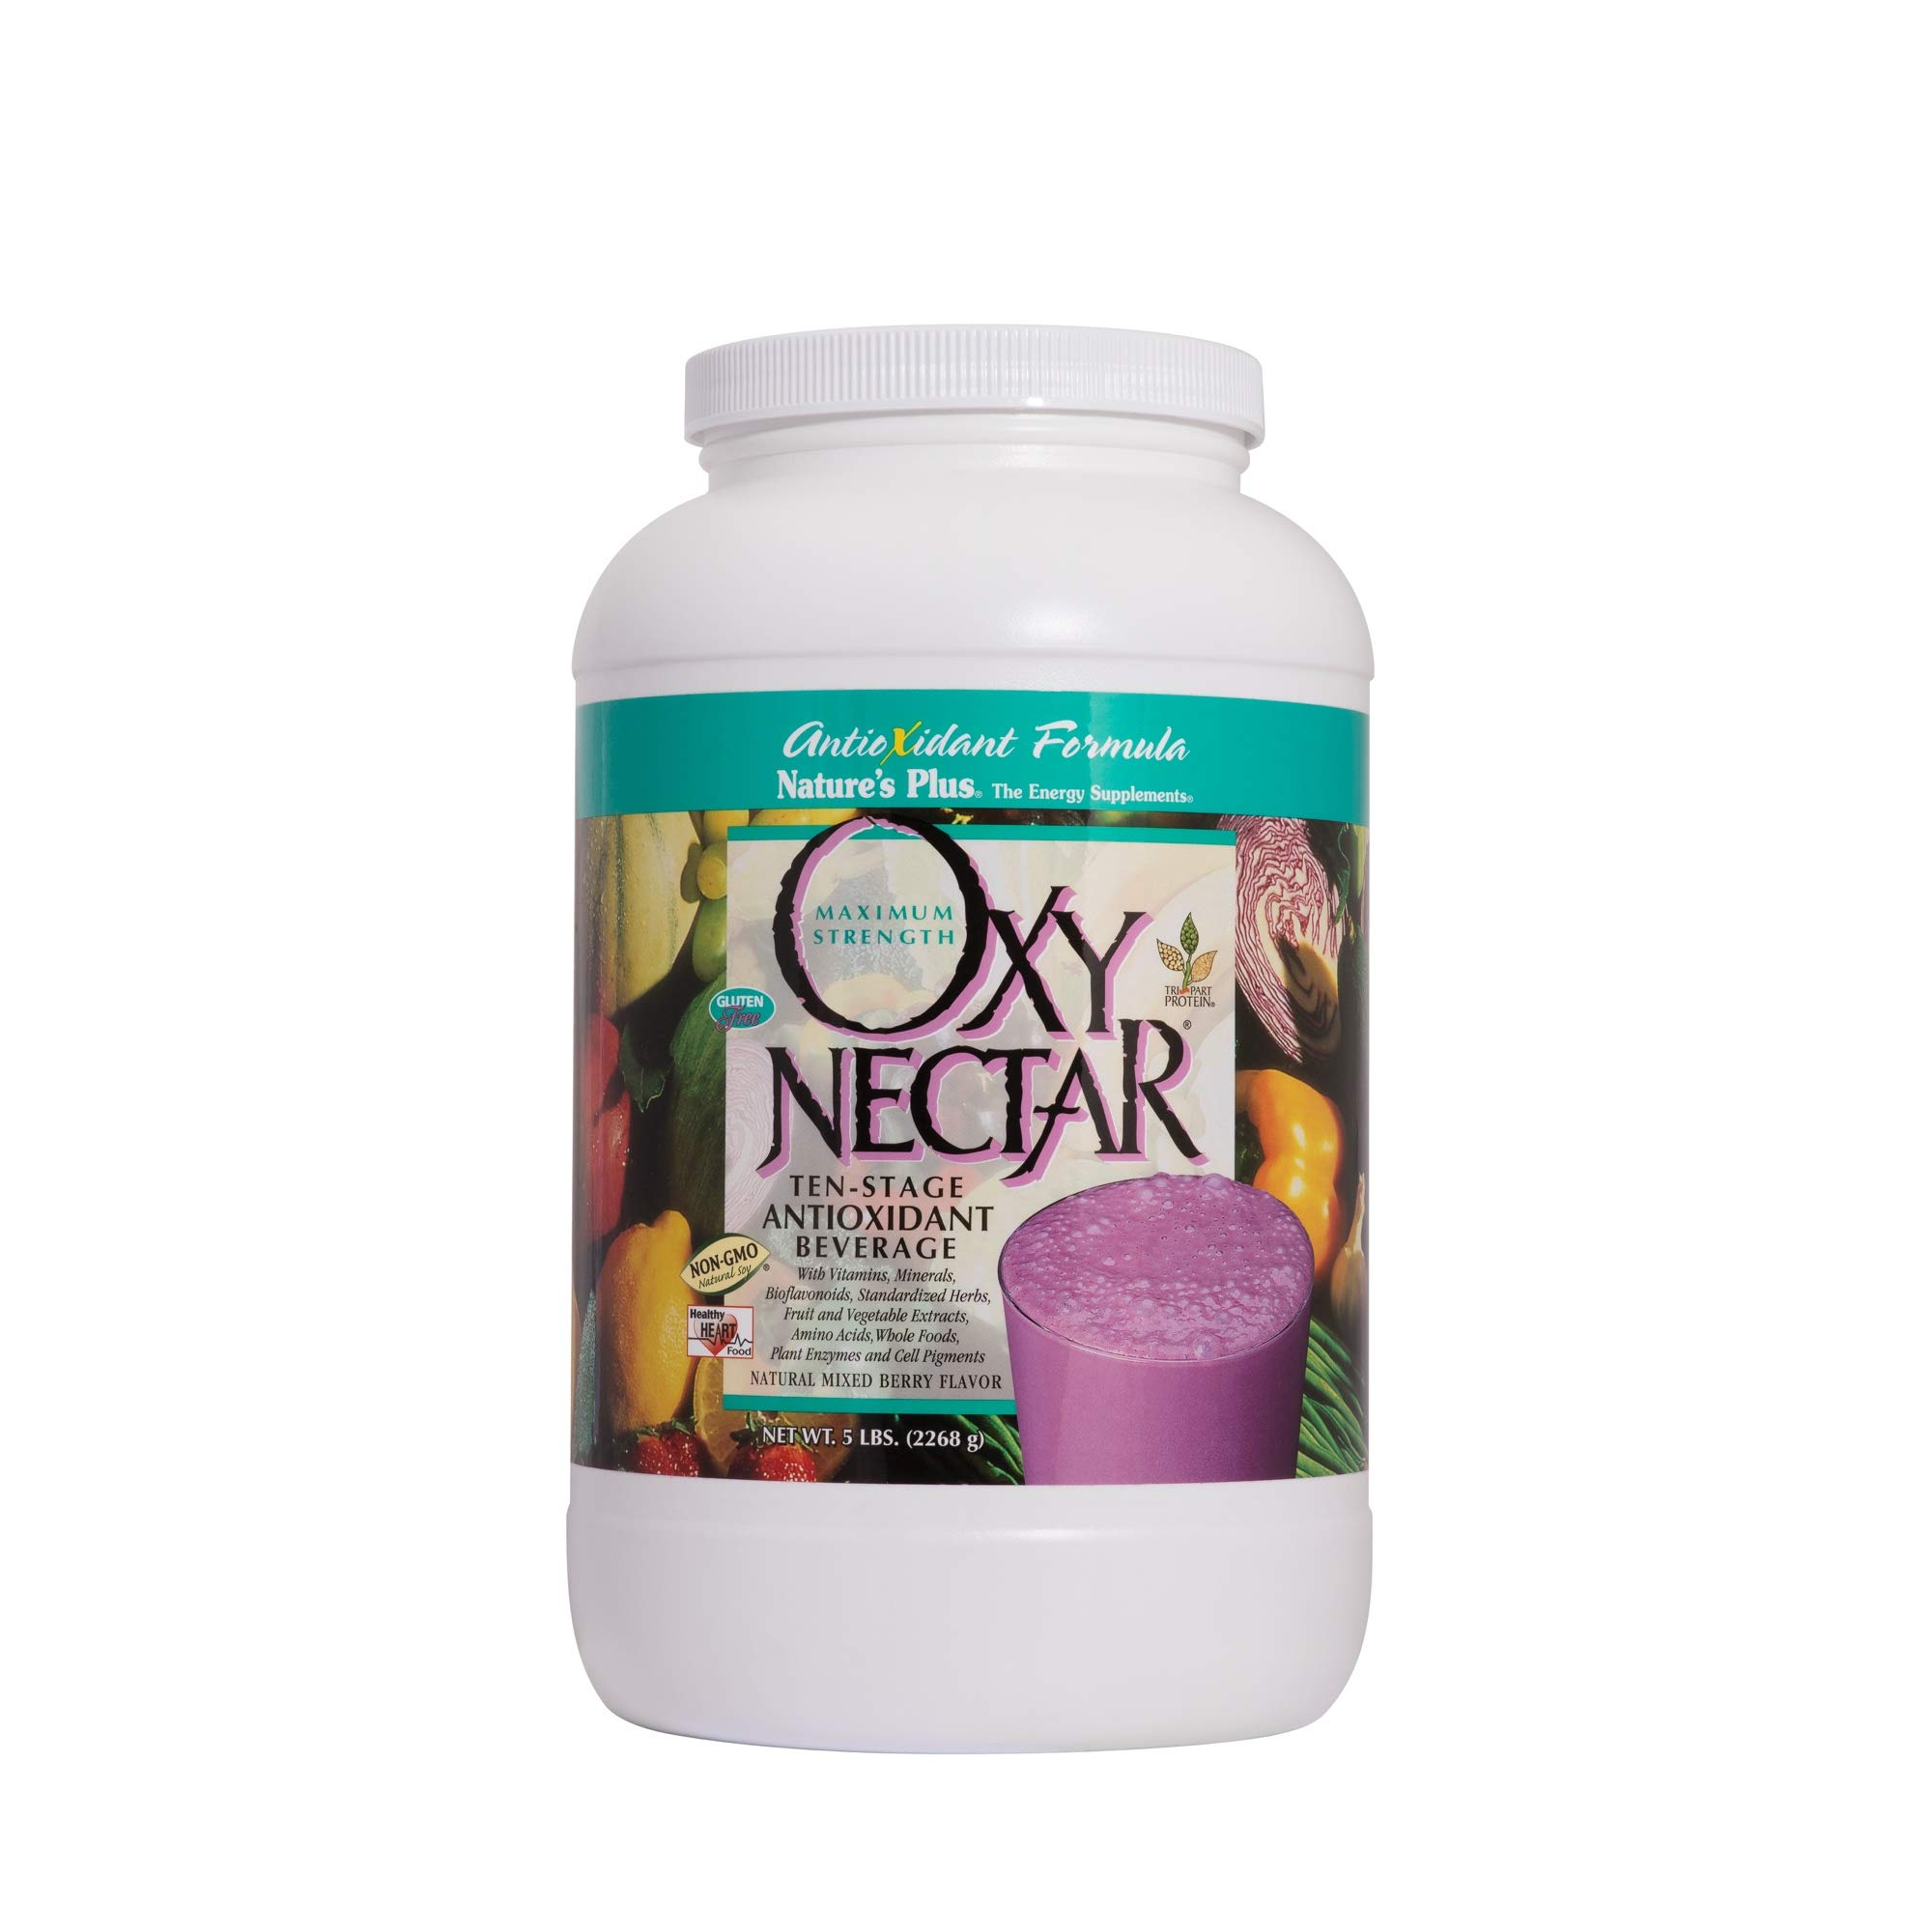 Natures Plus Oxy Nectar - 5 lbs Drink Powder, Natural Mixed Berry Flavor - 10 Stage Antioxidant Beverage Powder with Protein - Vegetarian, Gluten Free - 68 Servings